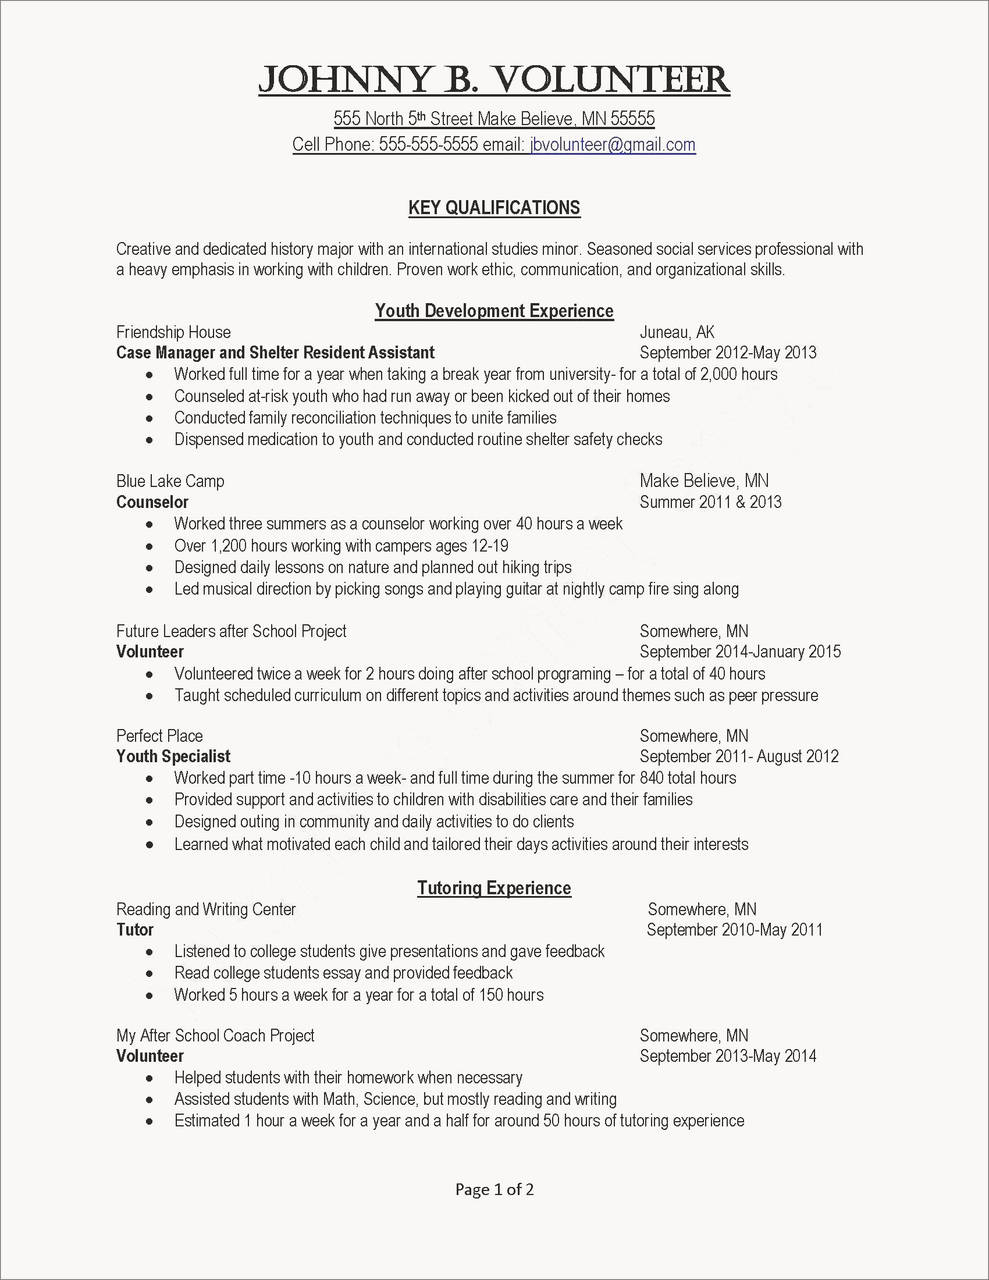 Skills and Interests On Resume - Perfect Resume Example Luxury Resumes Skills Examples Resume